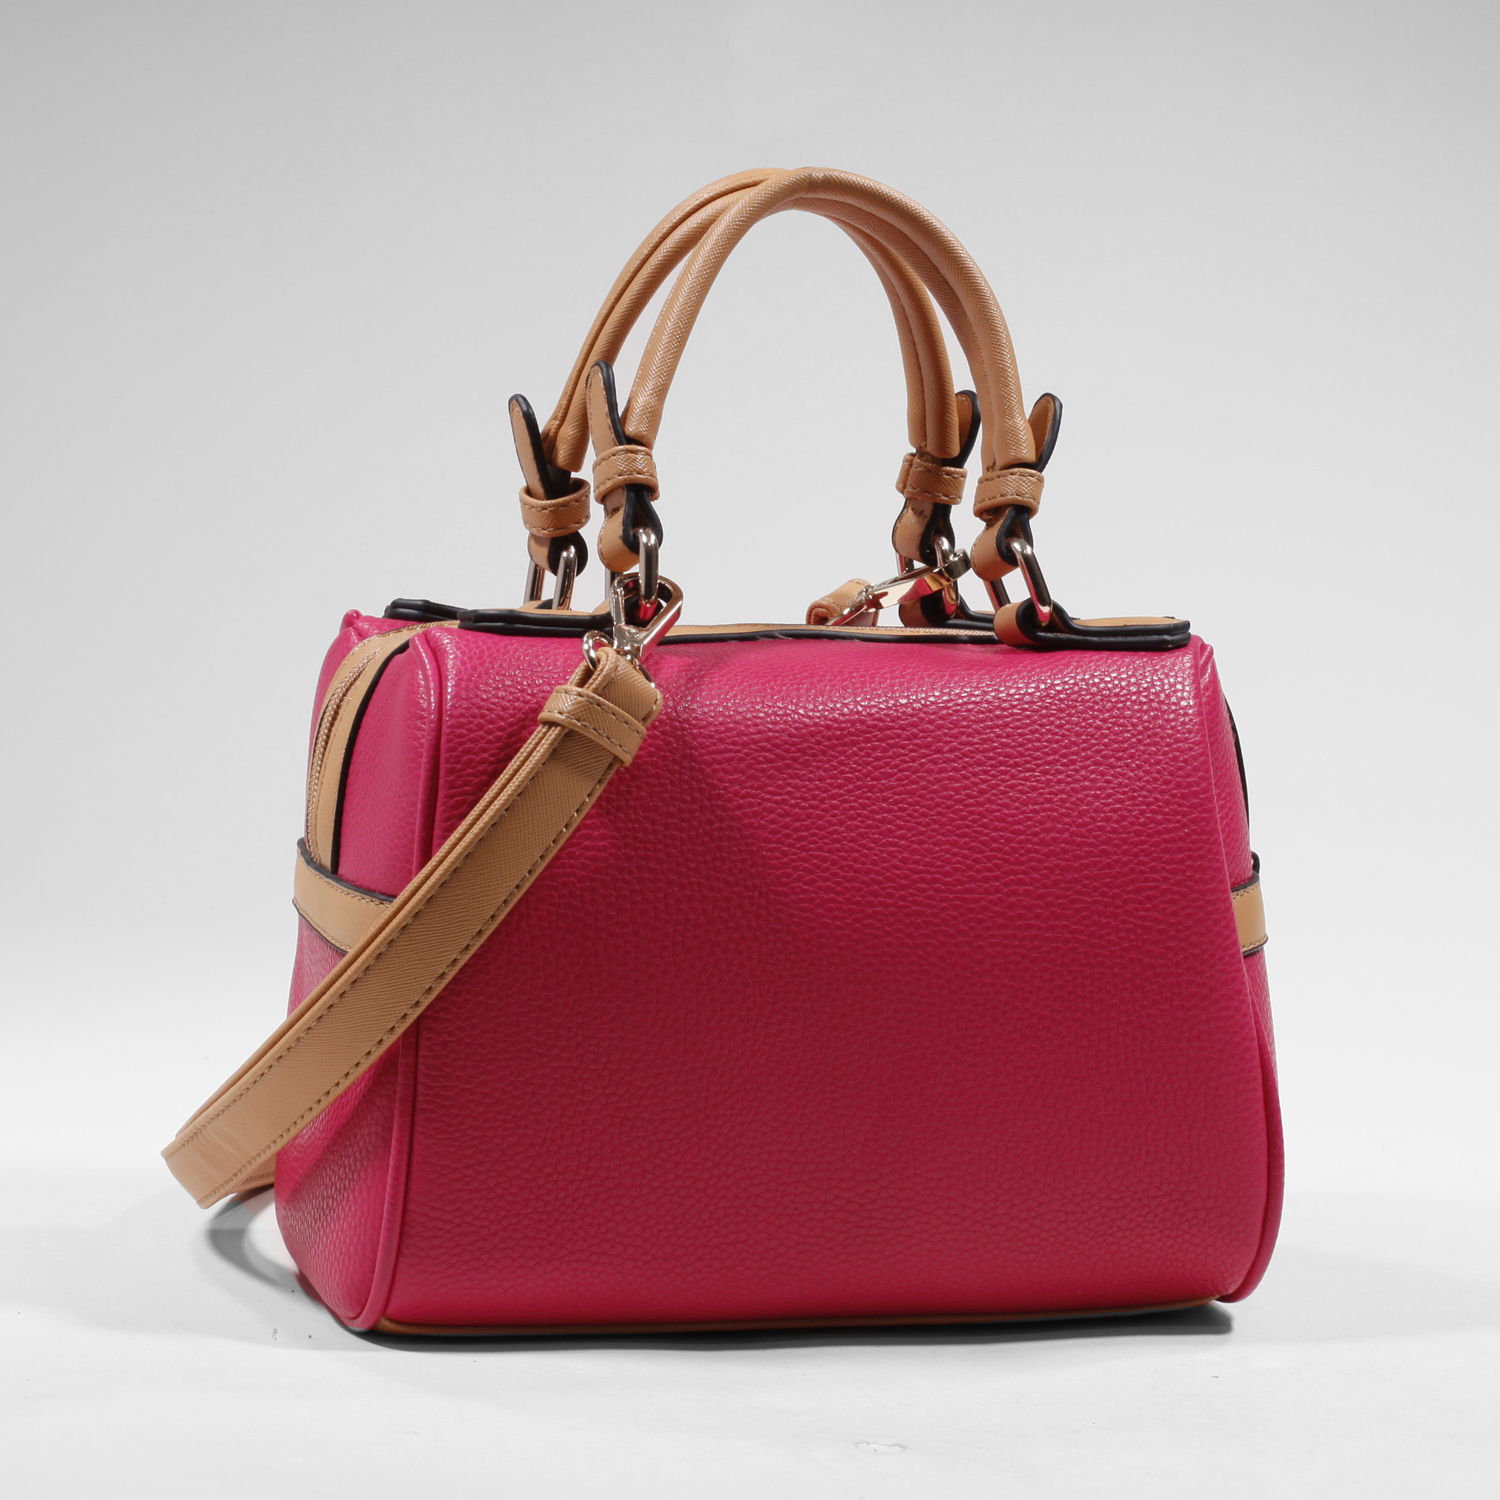 Women's Mini Fashion Satchel with Bonus Strap for Crossbody Wear - Fuchsia